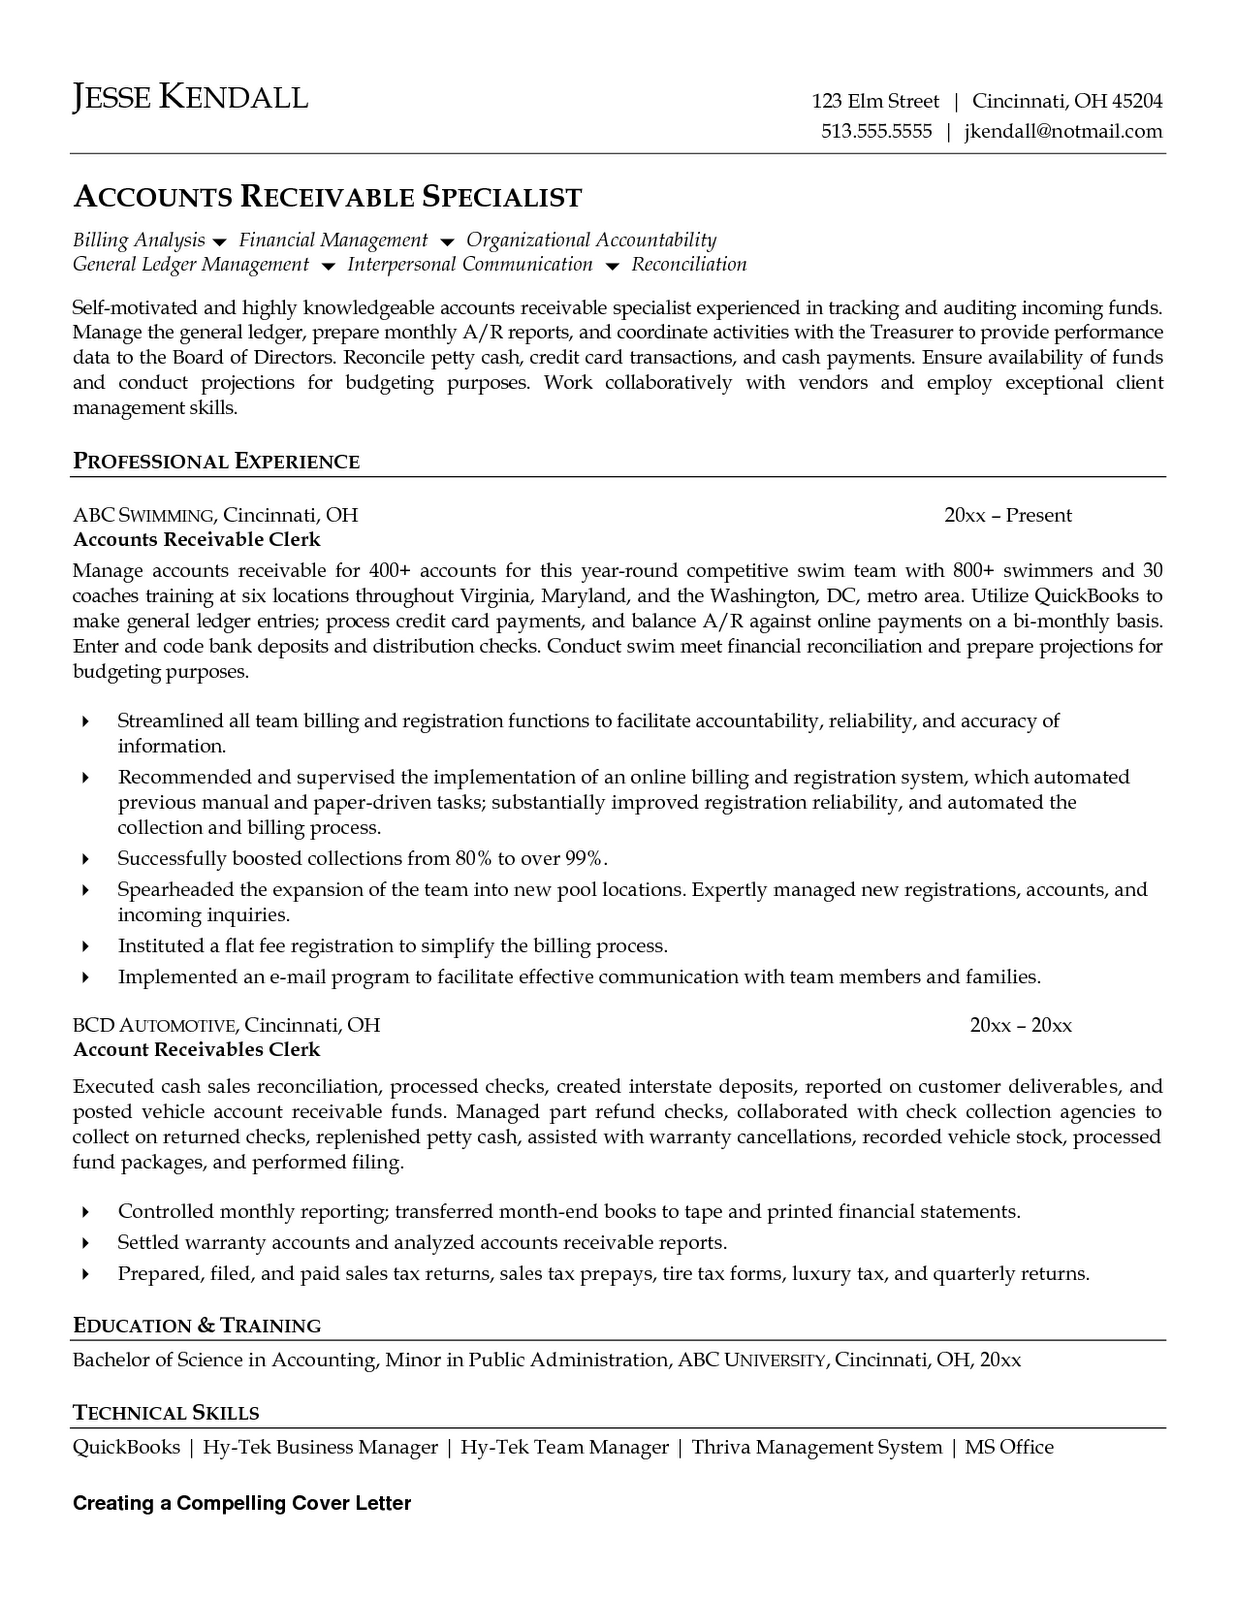 Resume Examples For Retail Management – Resumes for Retail